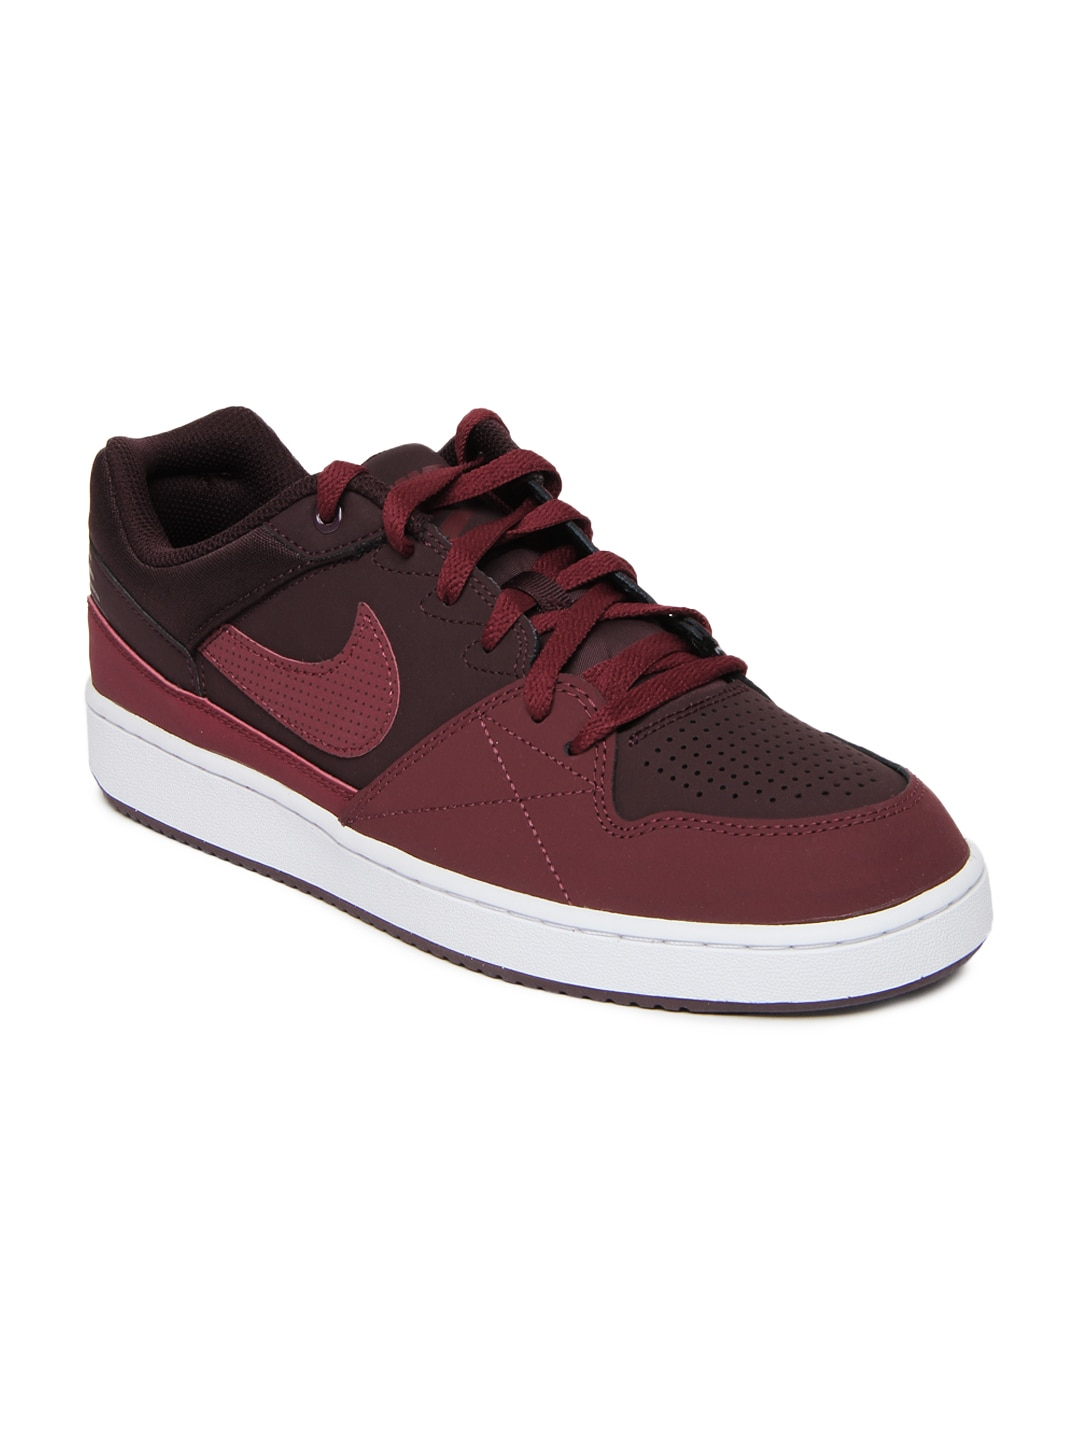 Nike Shoes Pic Download